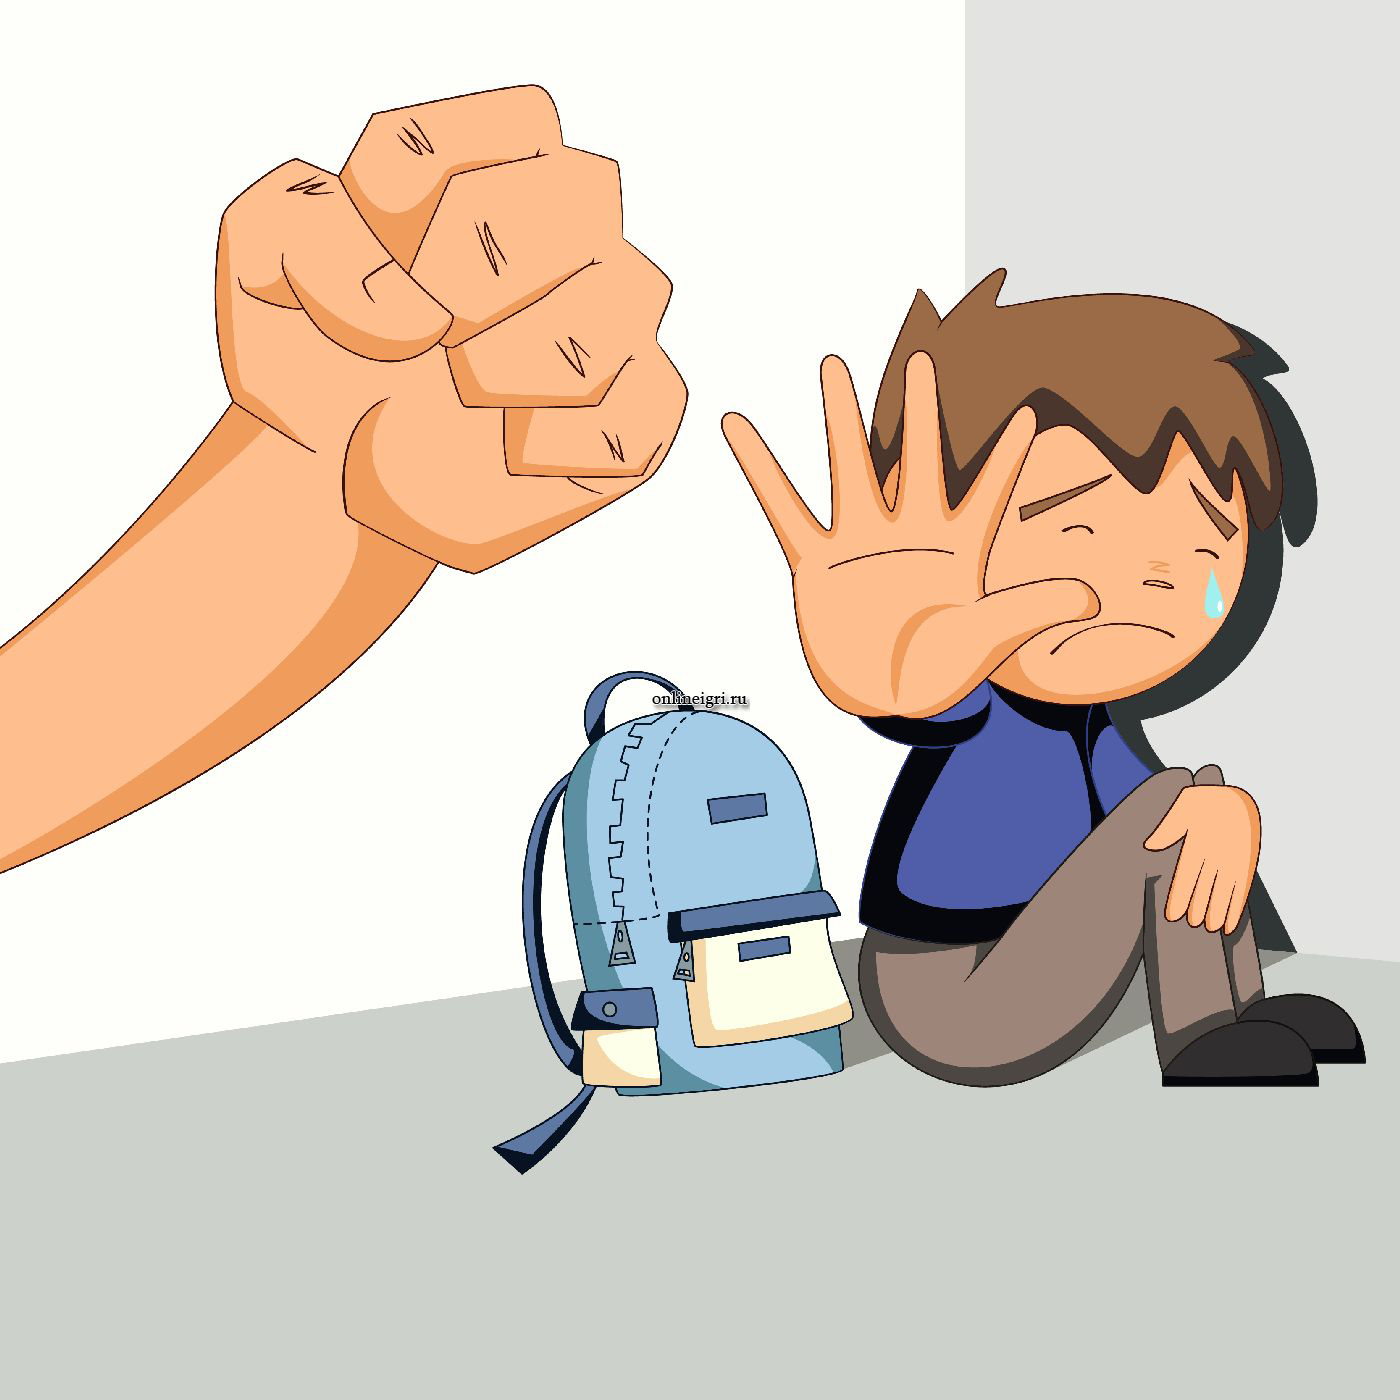 bullying sadistic pleasure Many times a child is bullying someone more helpless than them because they themselves are being bullied by someone more are bullies sadistic update cancel.